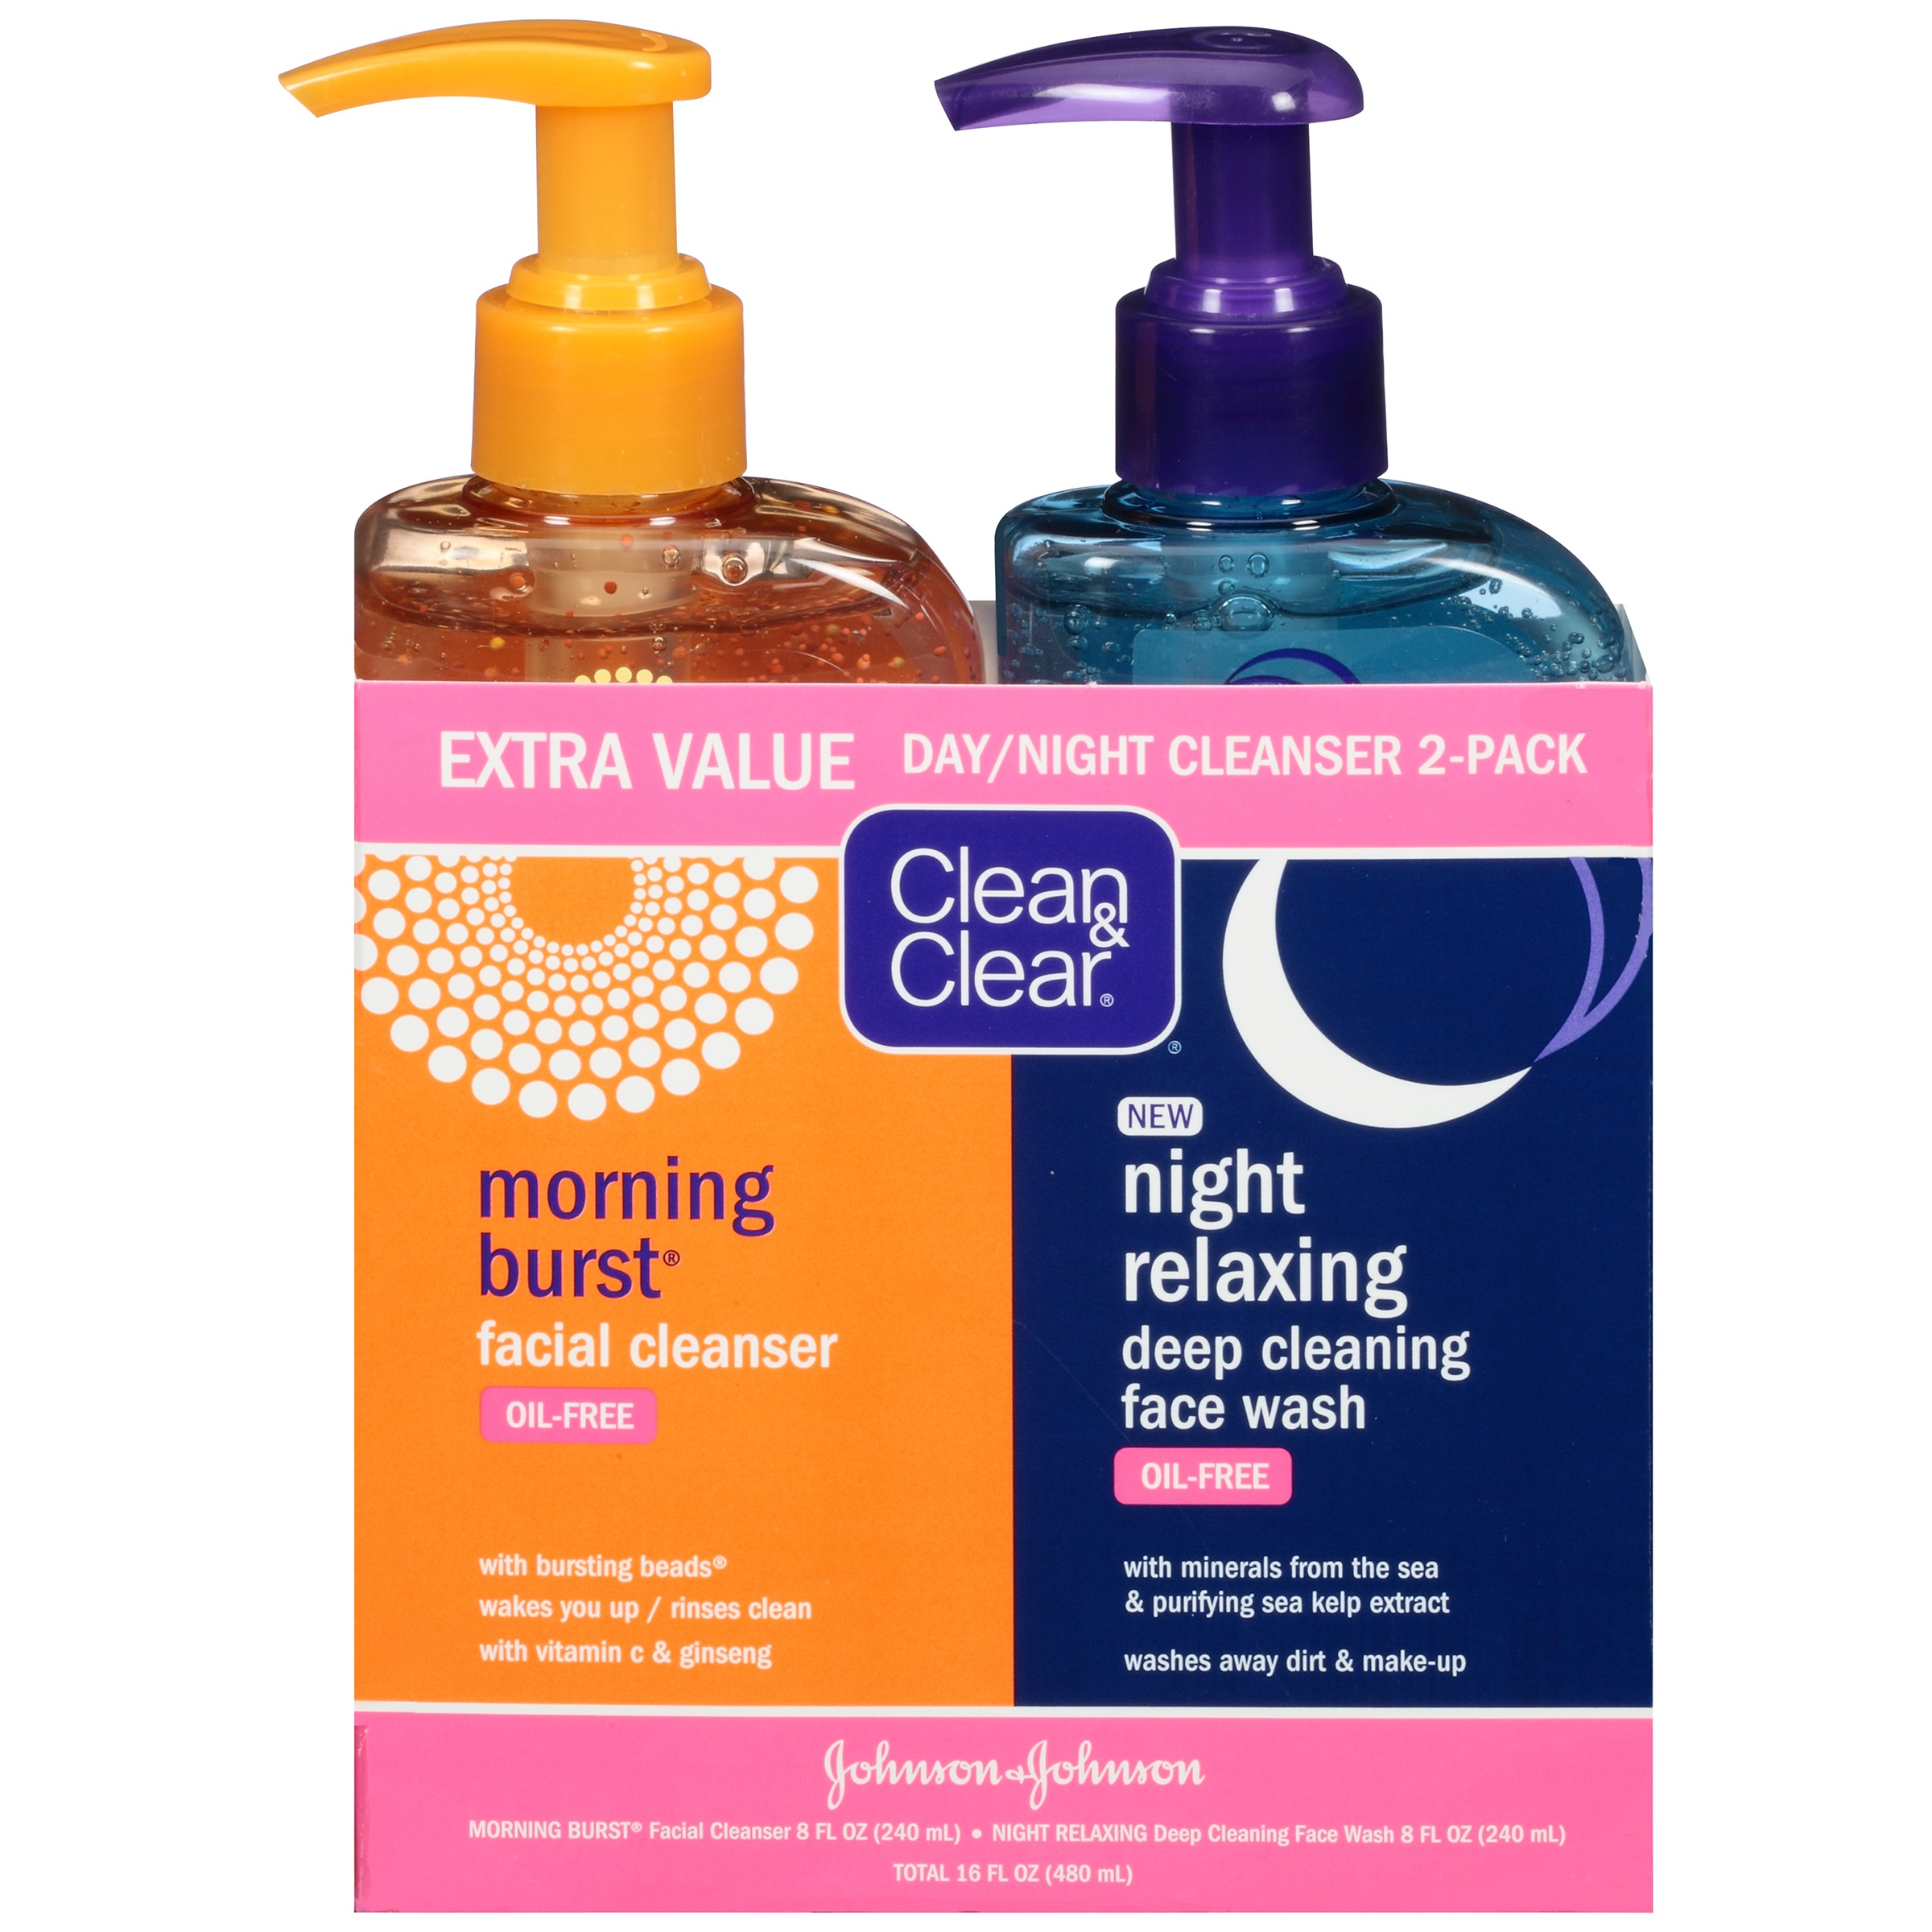 Clean Amp Clear Day Night Cleanser 2 Pack Walmart Com